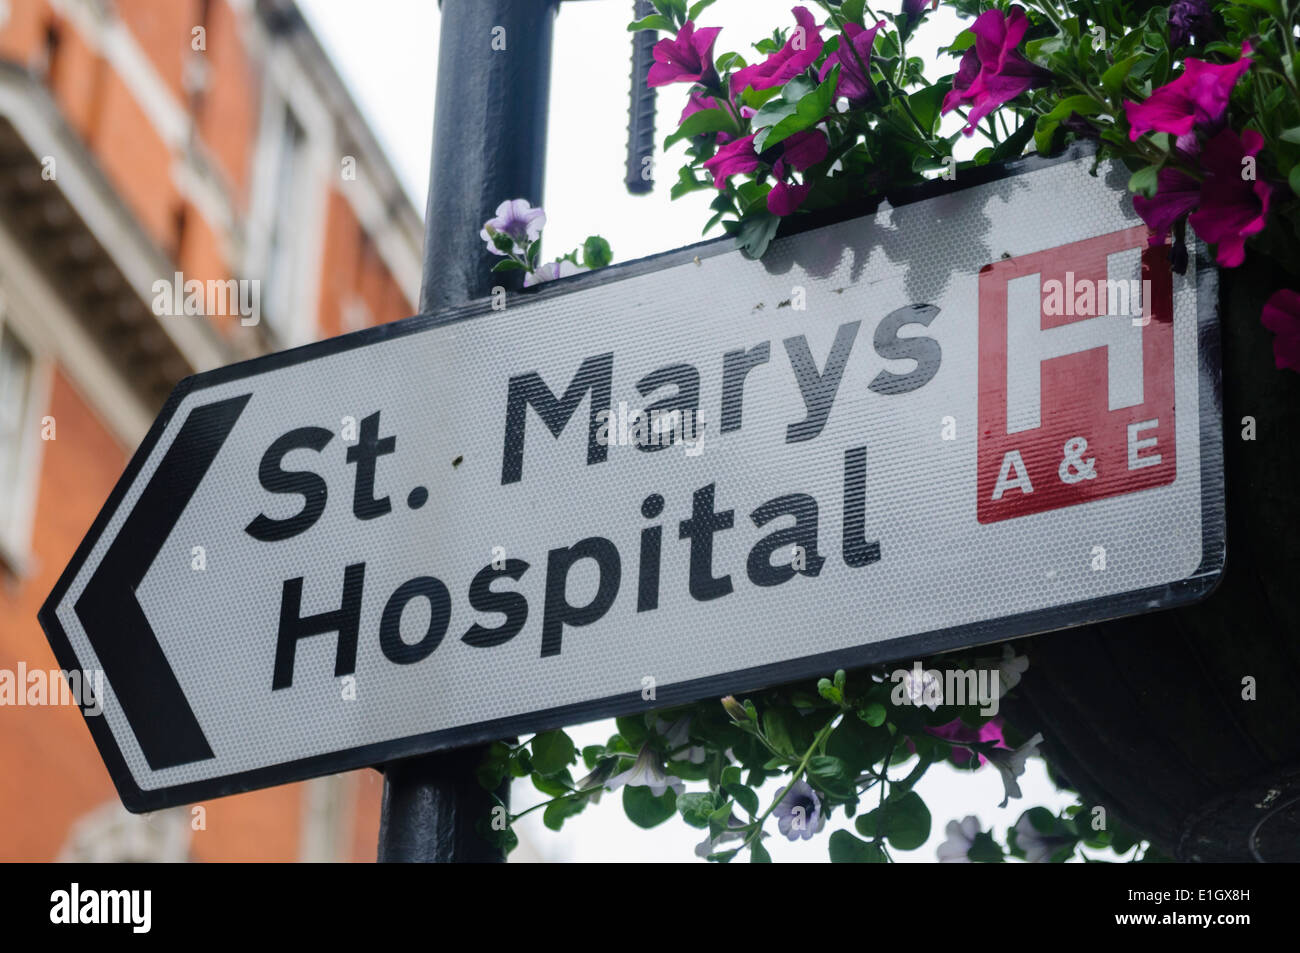 Sign for St. Mary's Hospital, London - Stock Image